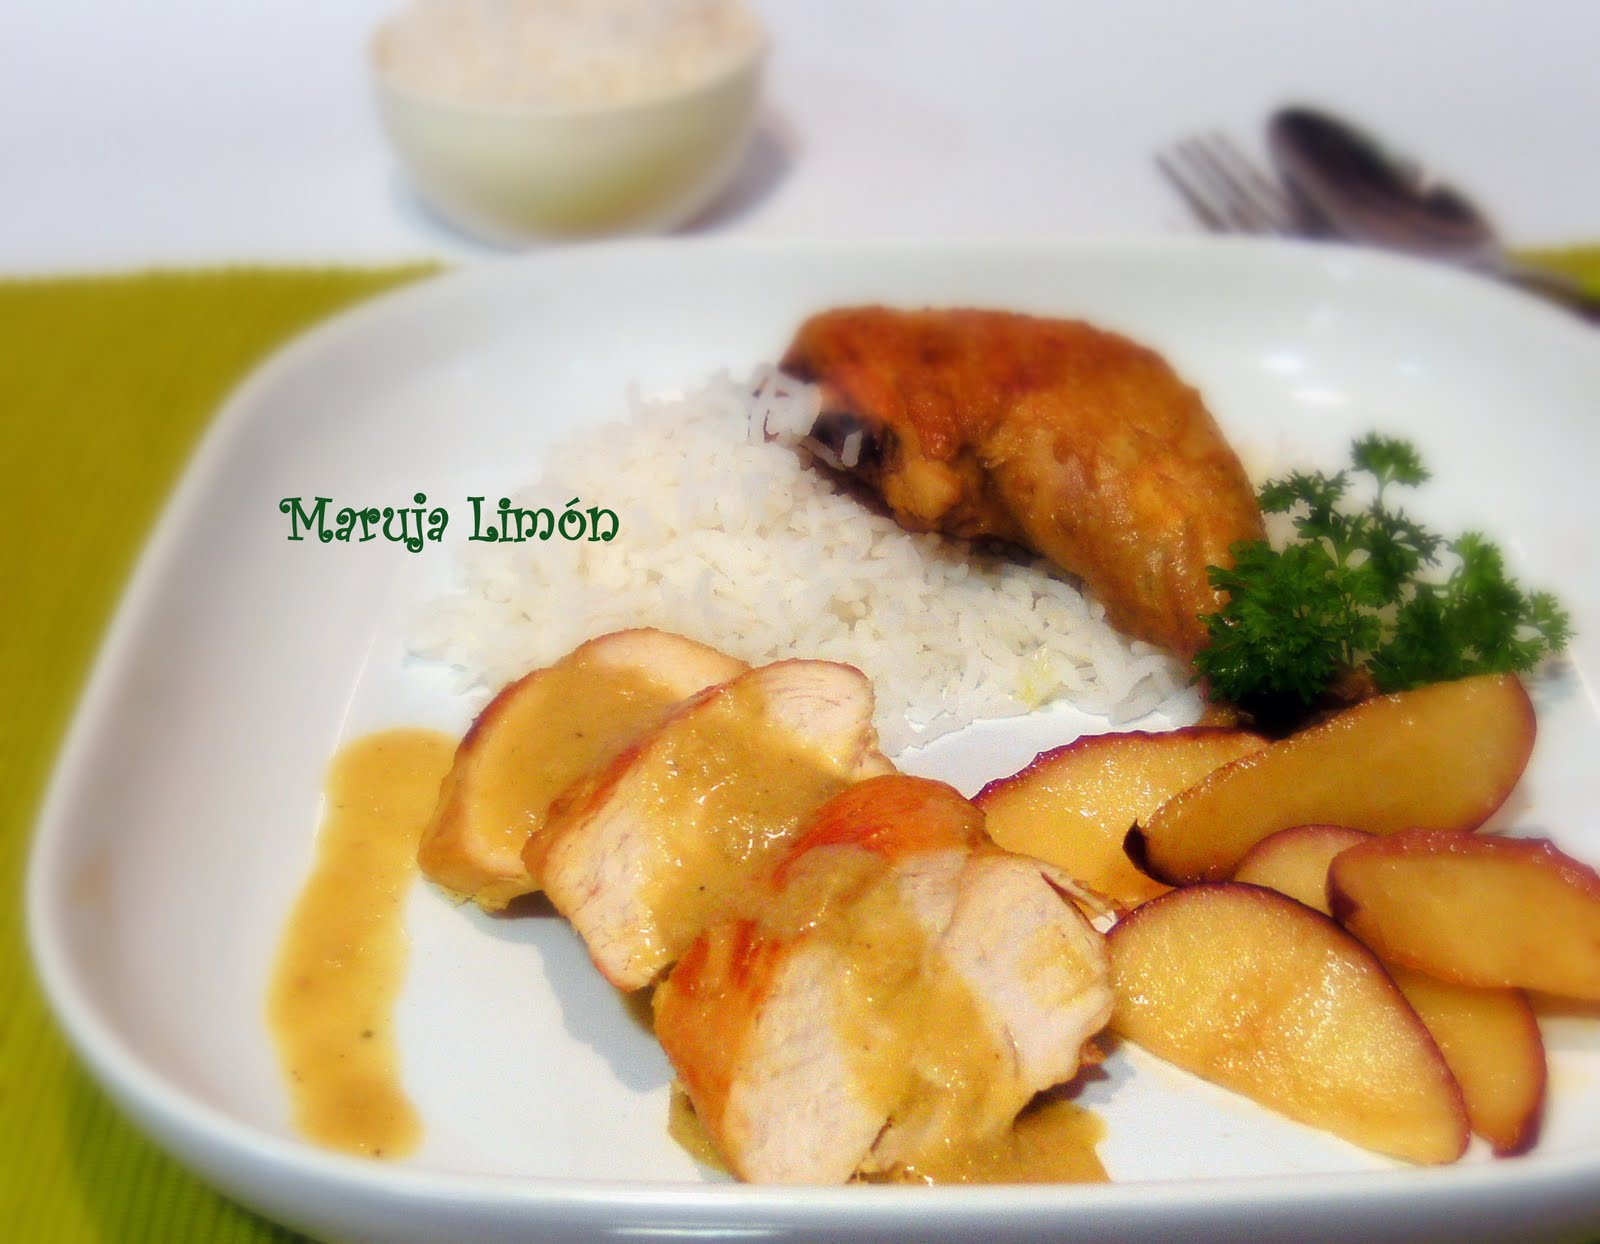 Pollo al curry con arroz basmaty